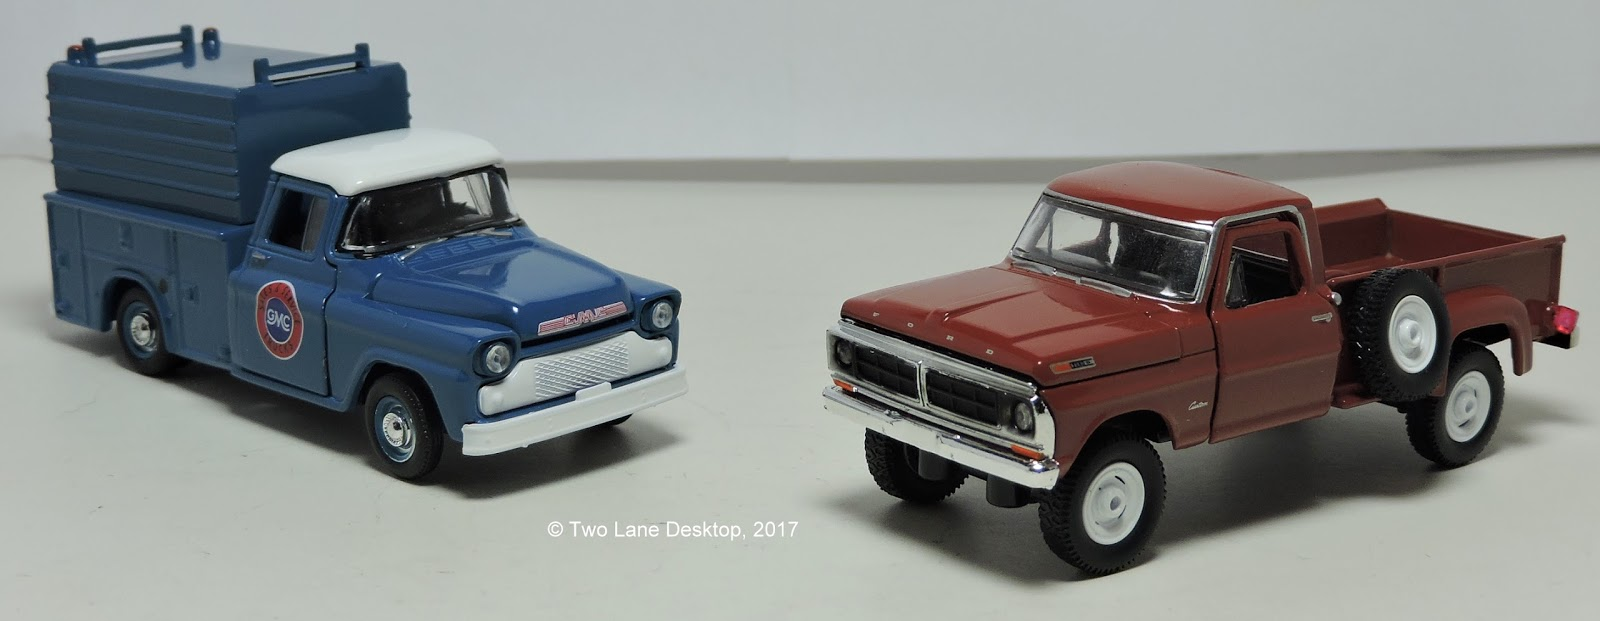 medium resolution of here s a look at a few good m2 machines truck castings with their first time bed variations the gm trucks have already gotten the utility trailer package